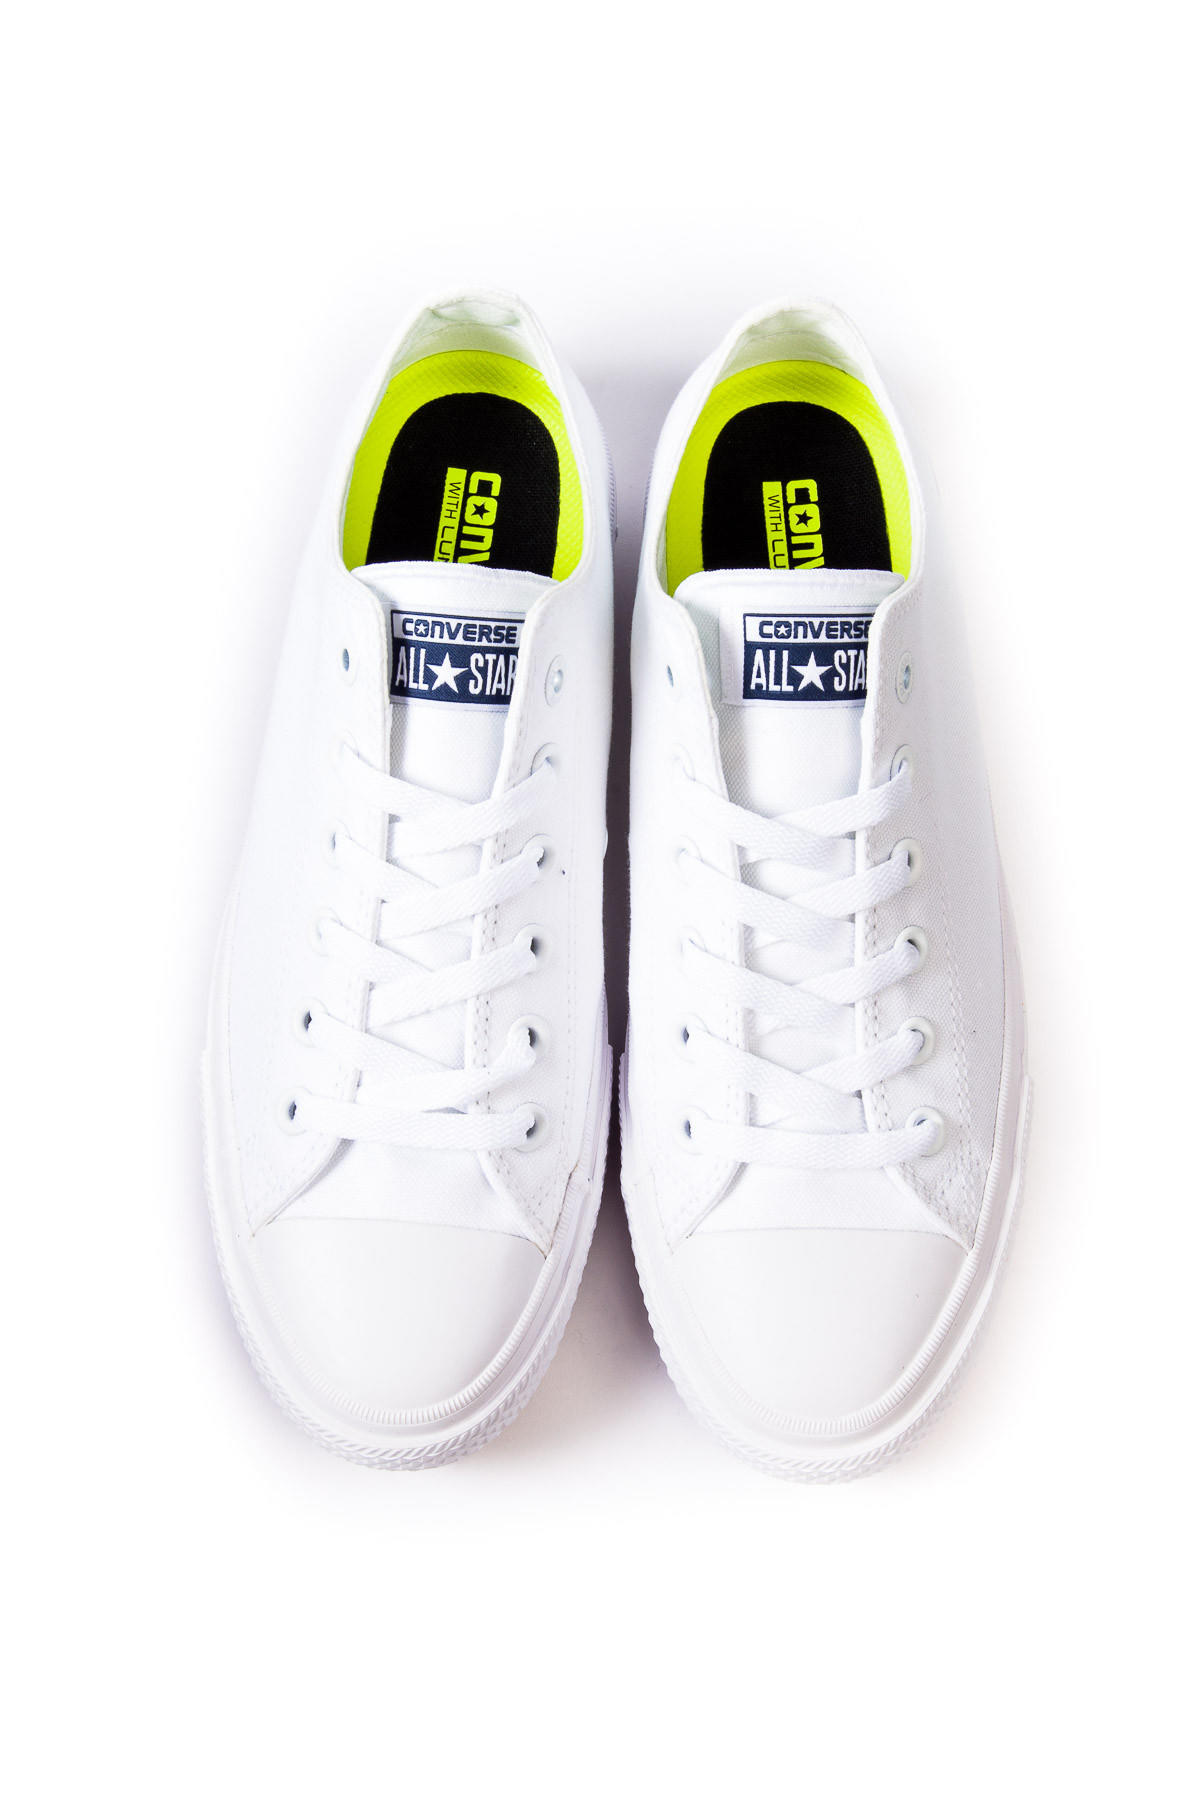 2c48078e1848 Converse Chuck Taylor All Star II White from Probus